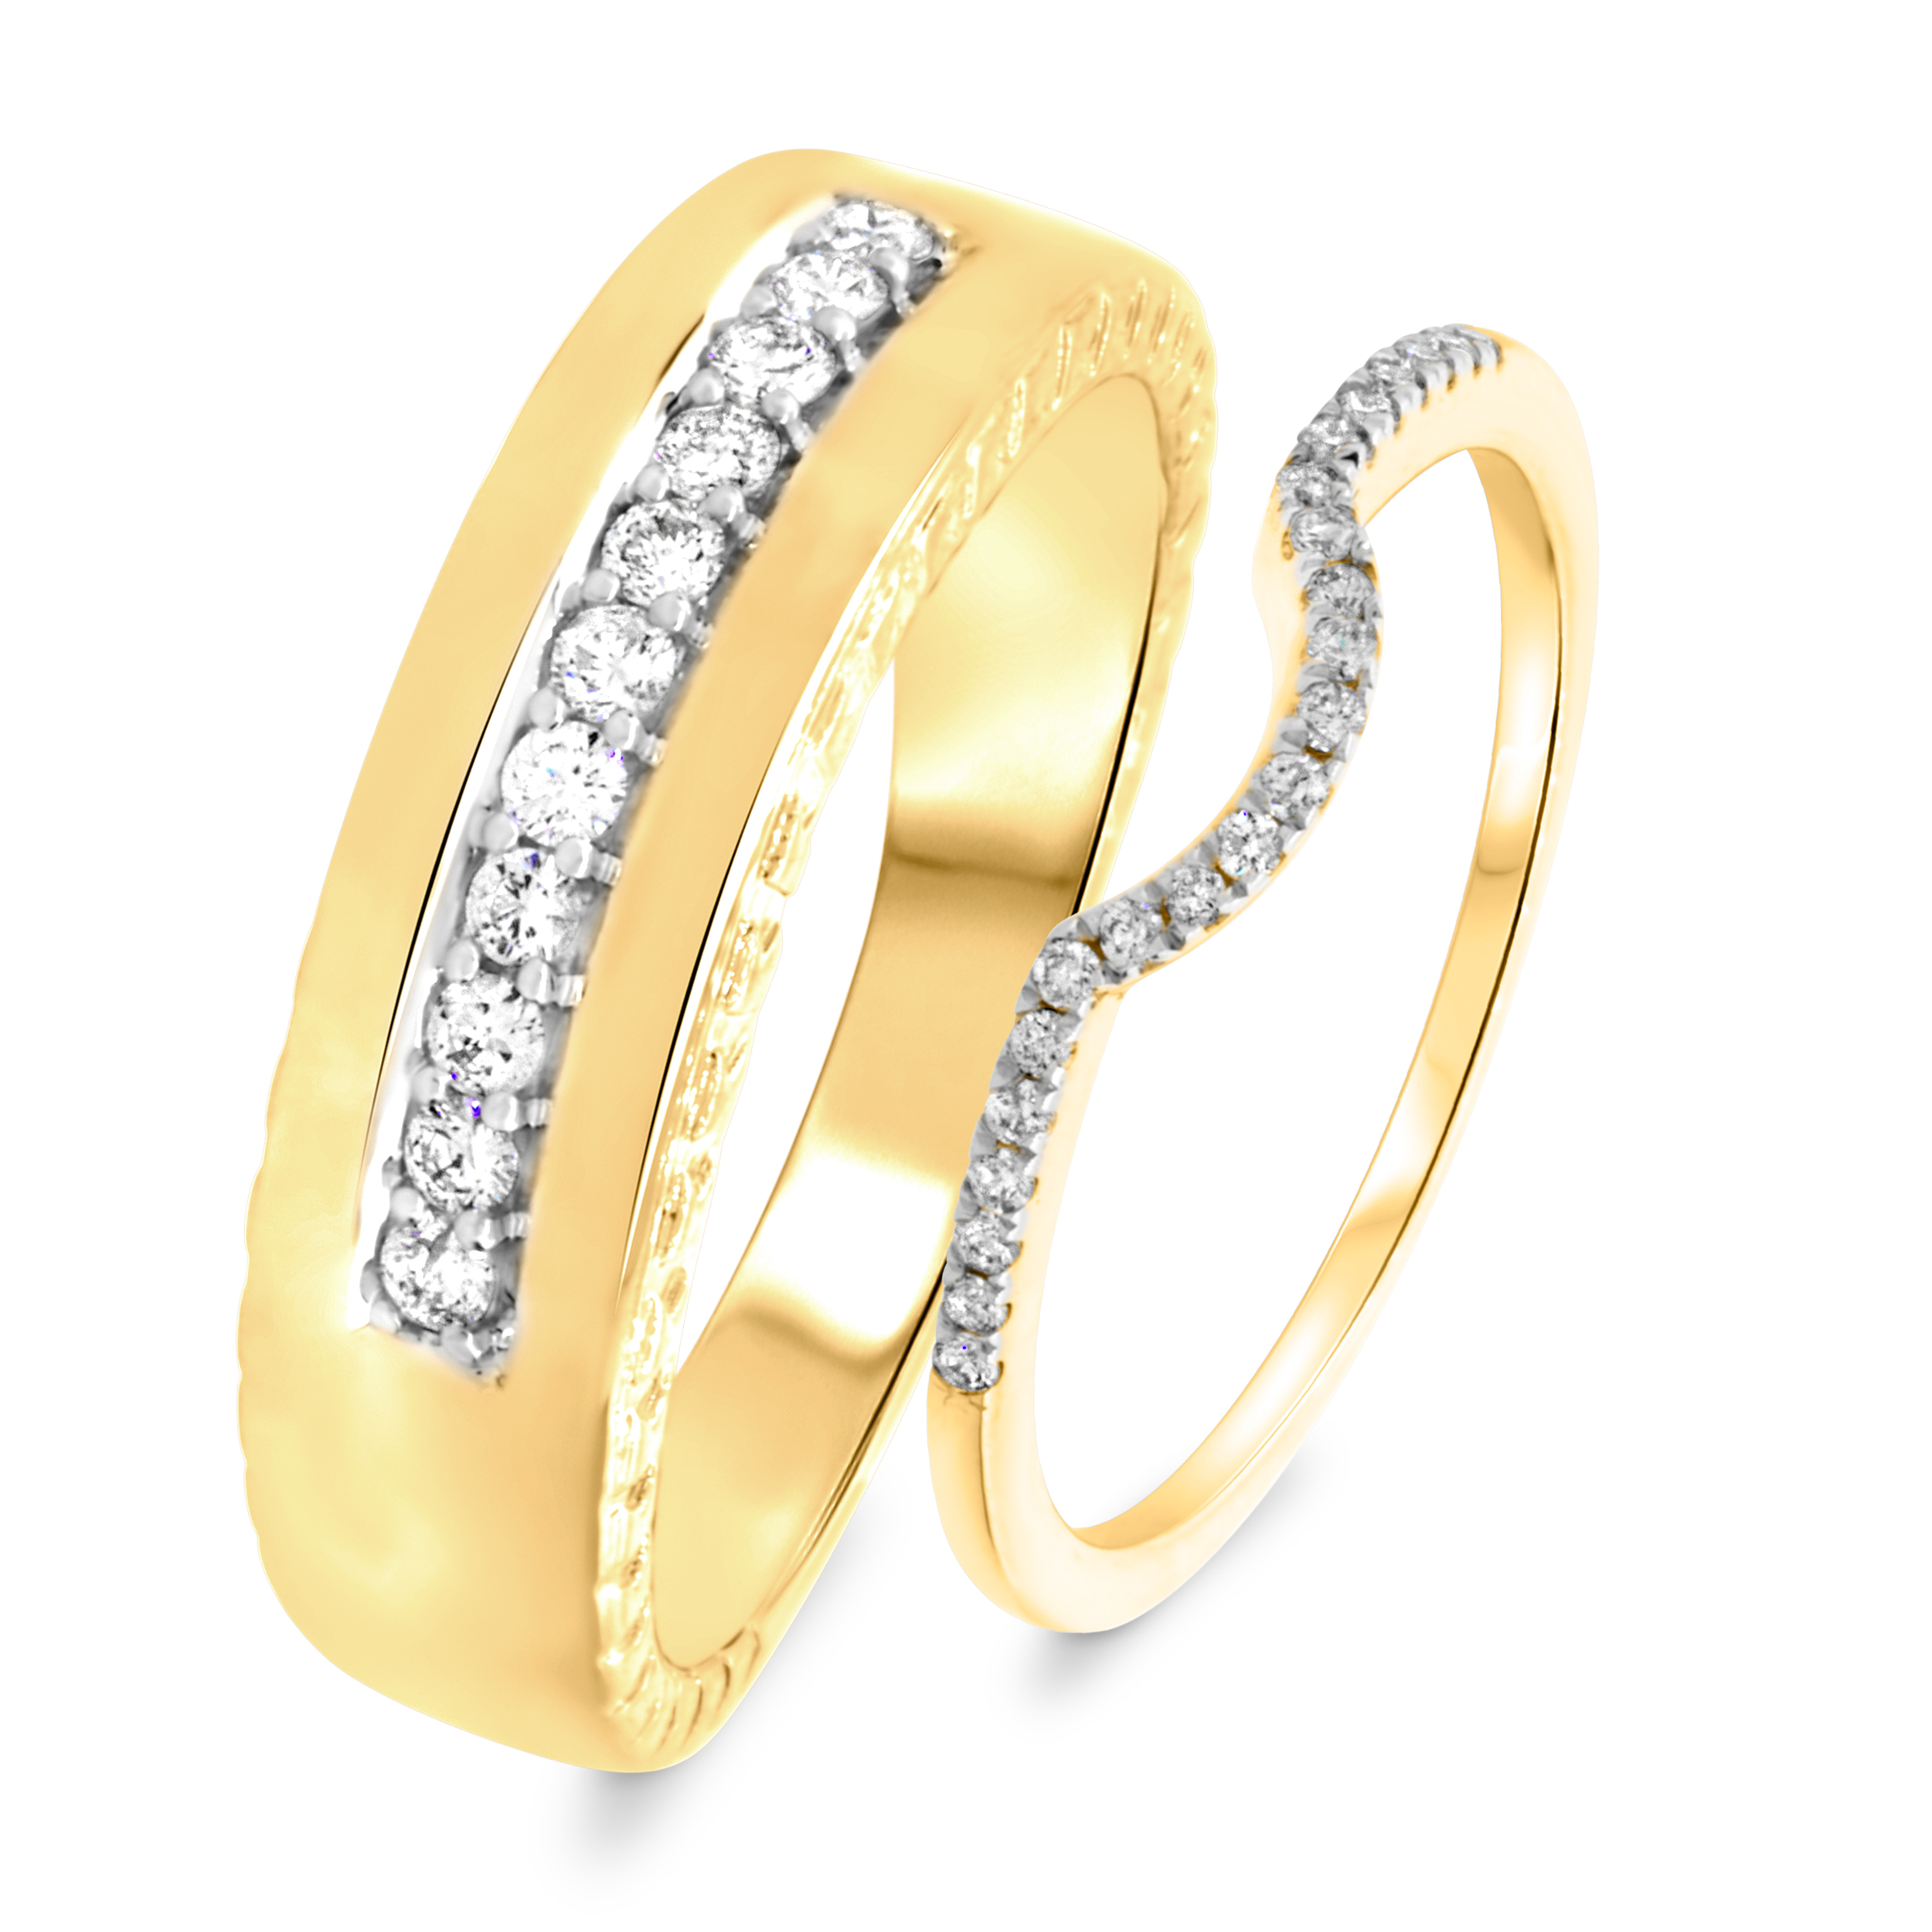 1/3 Carat T.W. Round Cut Diamond His and Hers Wedding Band Set 14K Yellow Gold